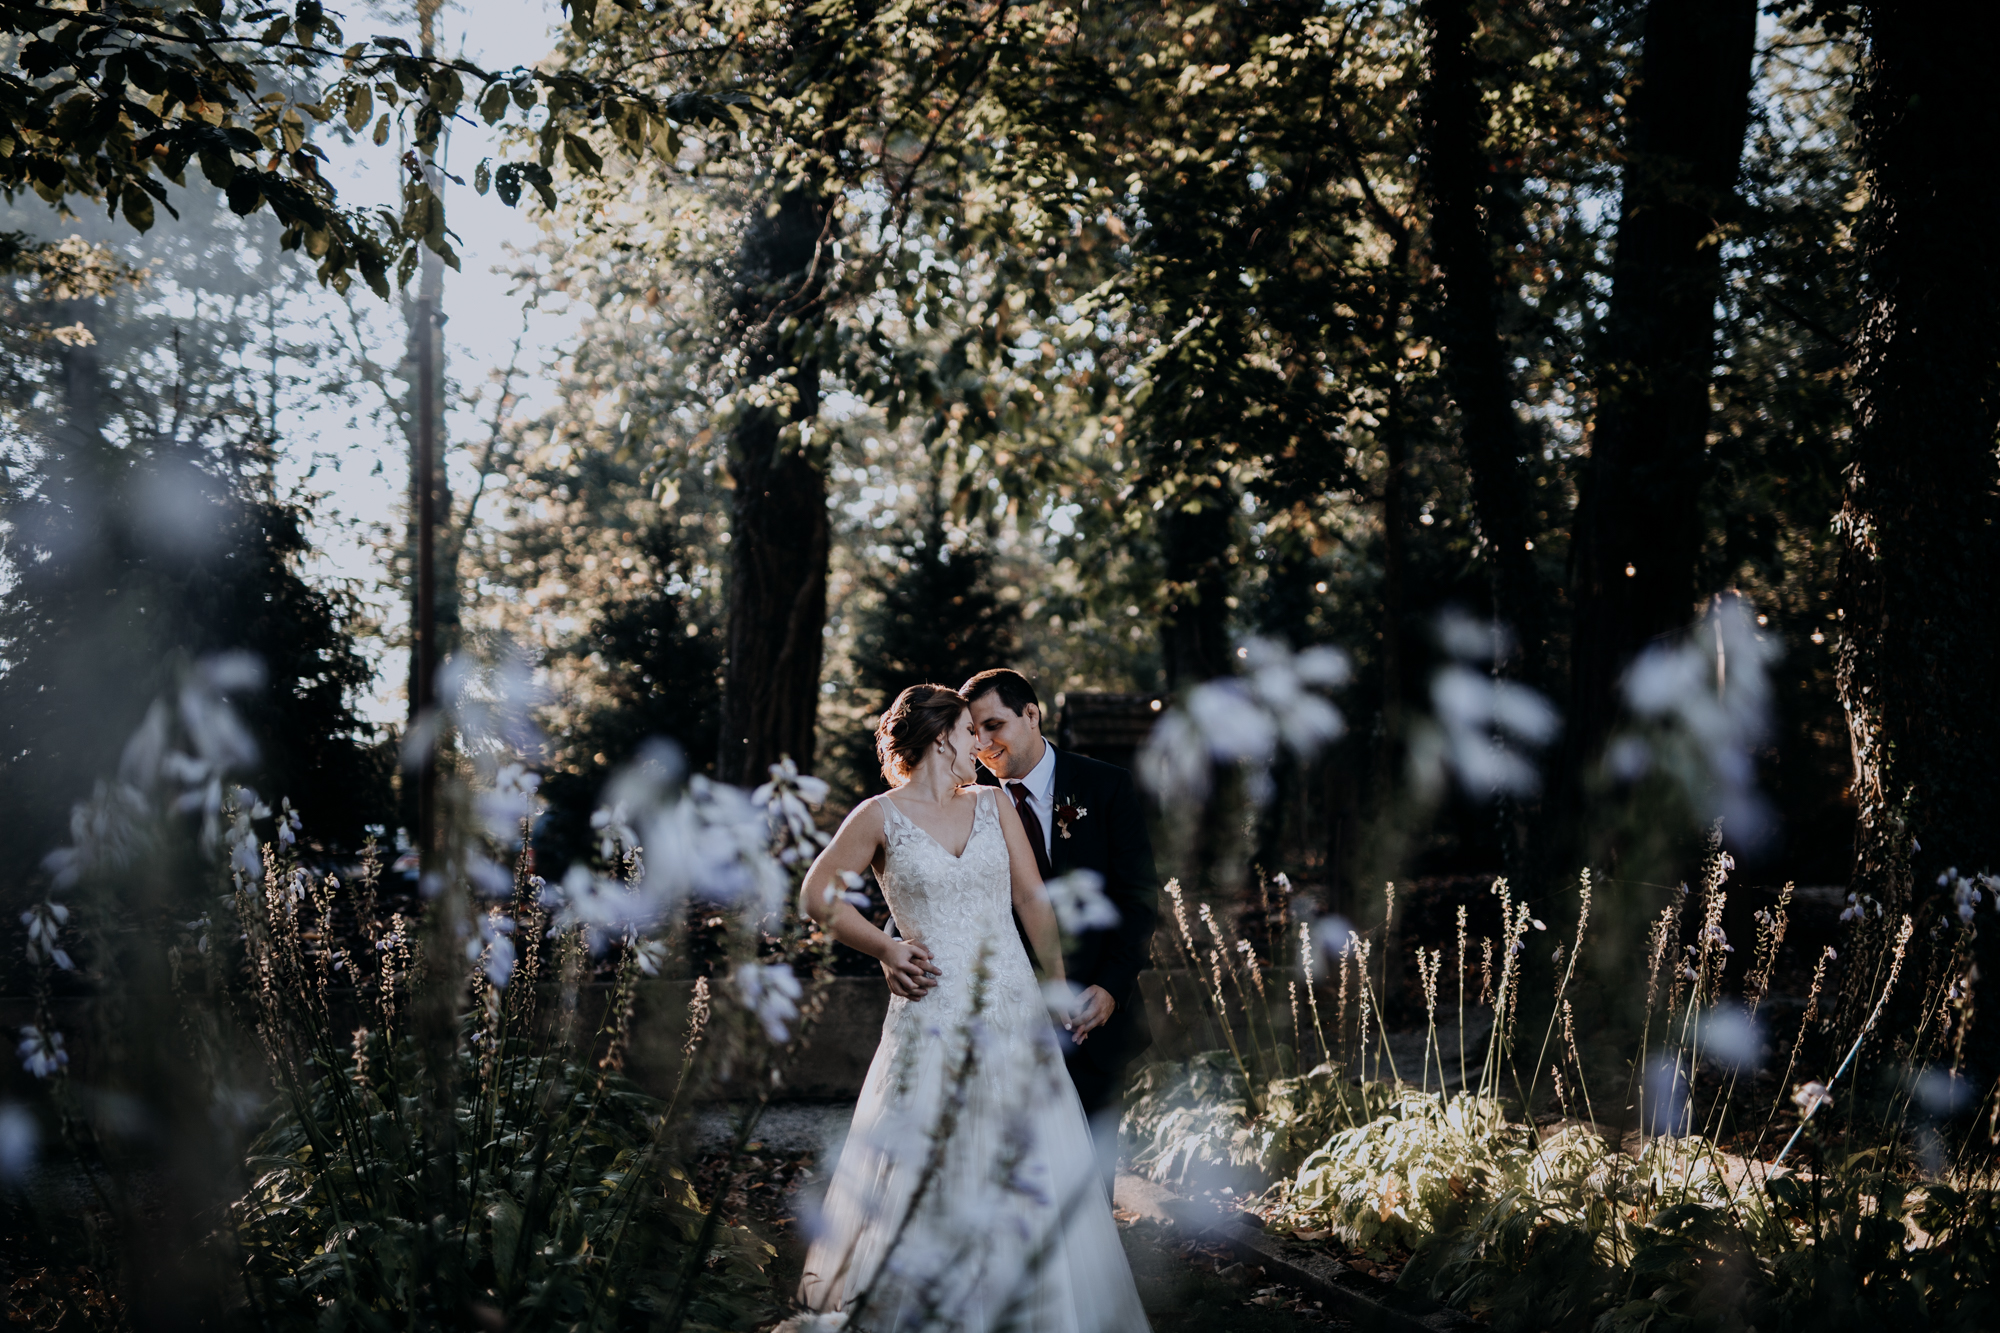 Cambria_Creative_Photographer_Boho_Wedding_Historic_Shady_Lane-5064.jpg